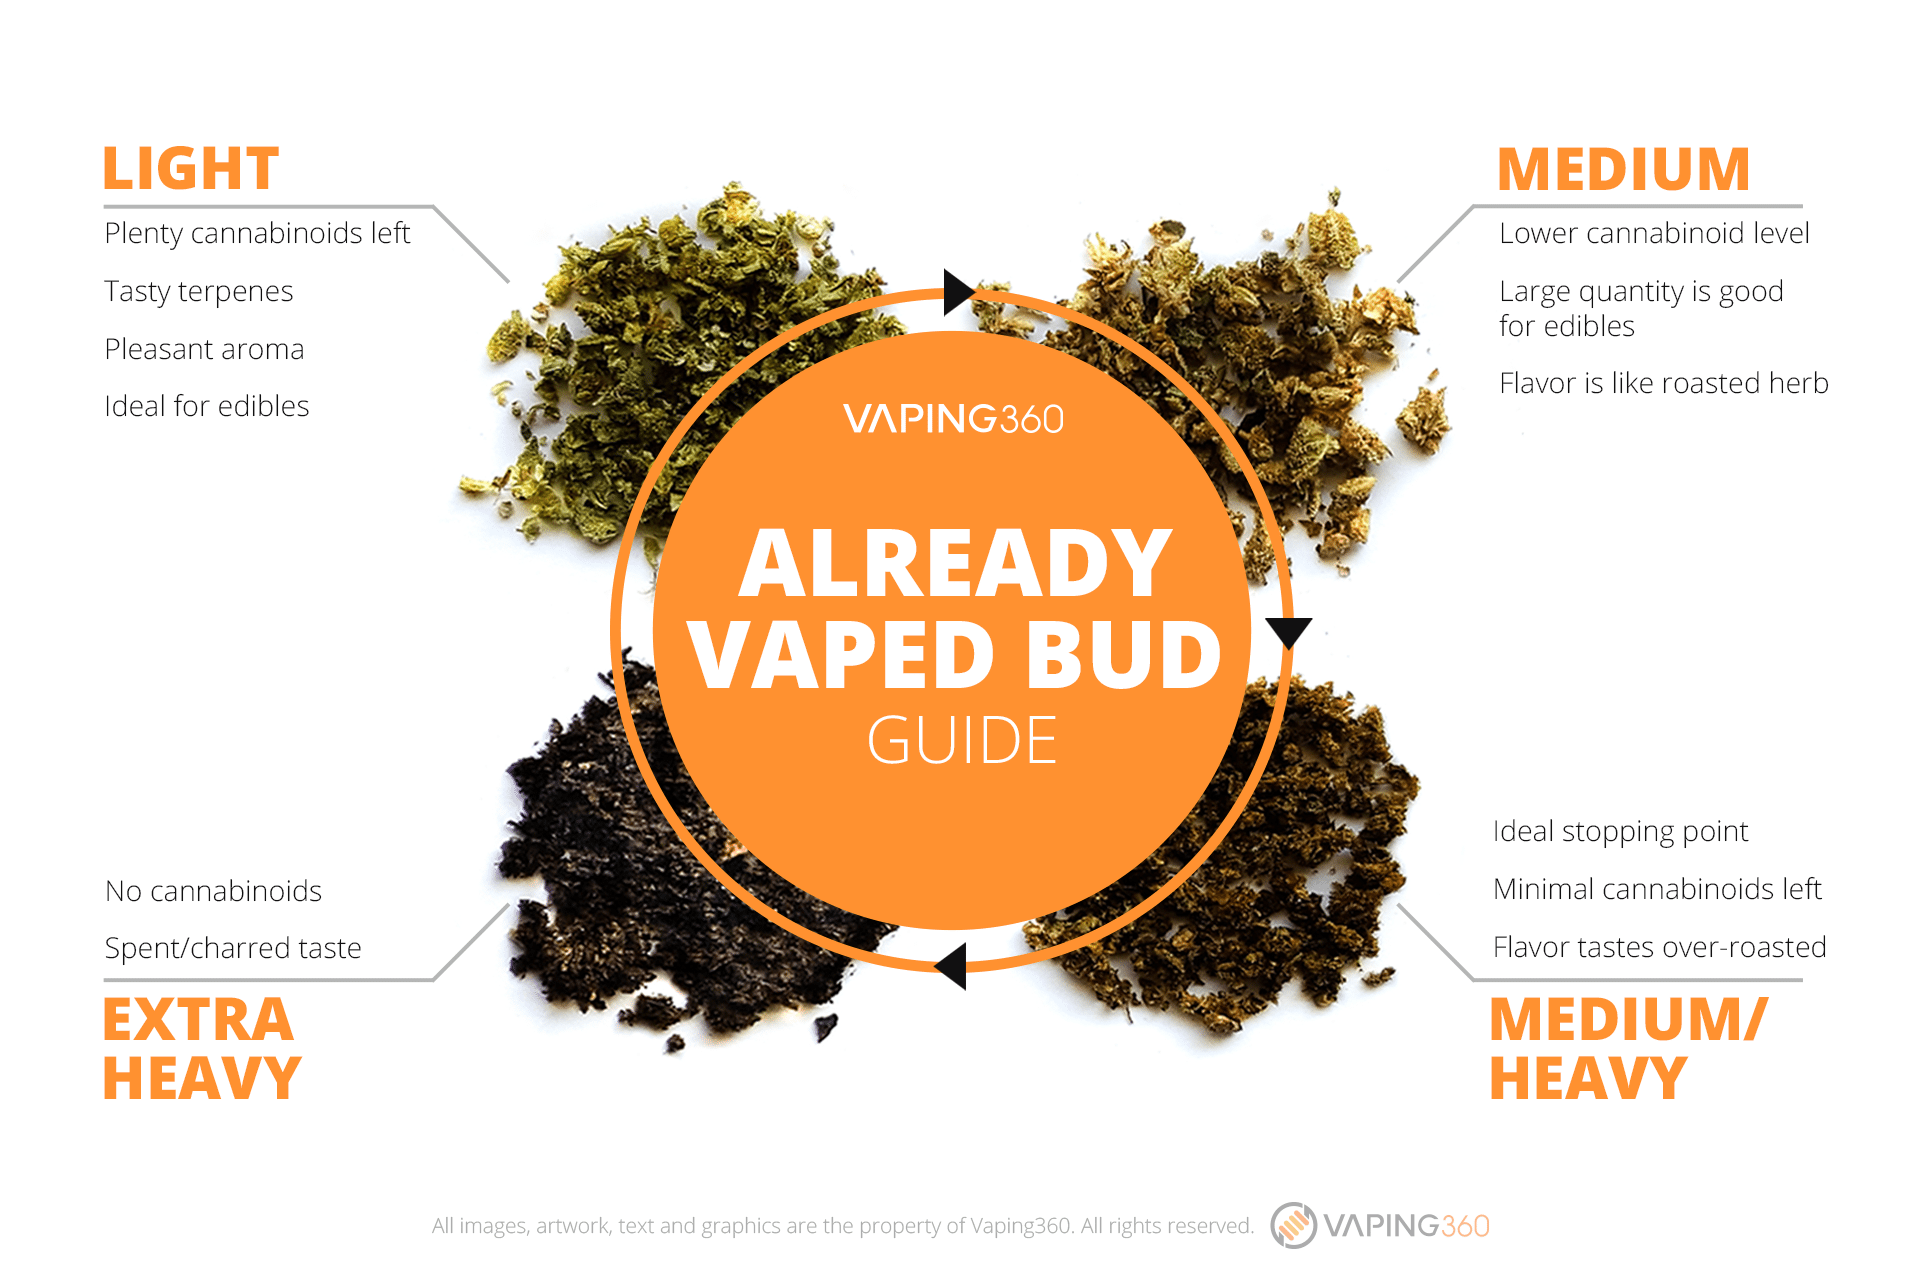 already-vaped-bud-guide